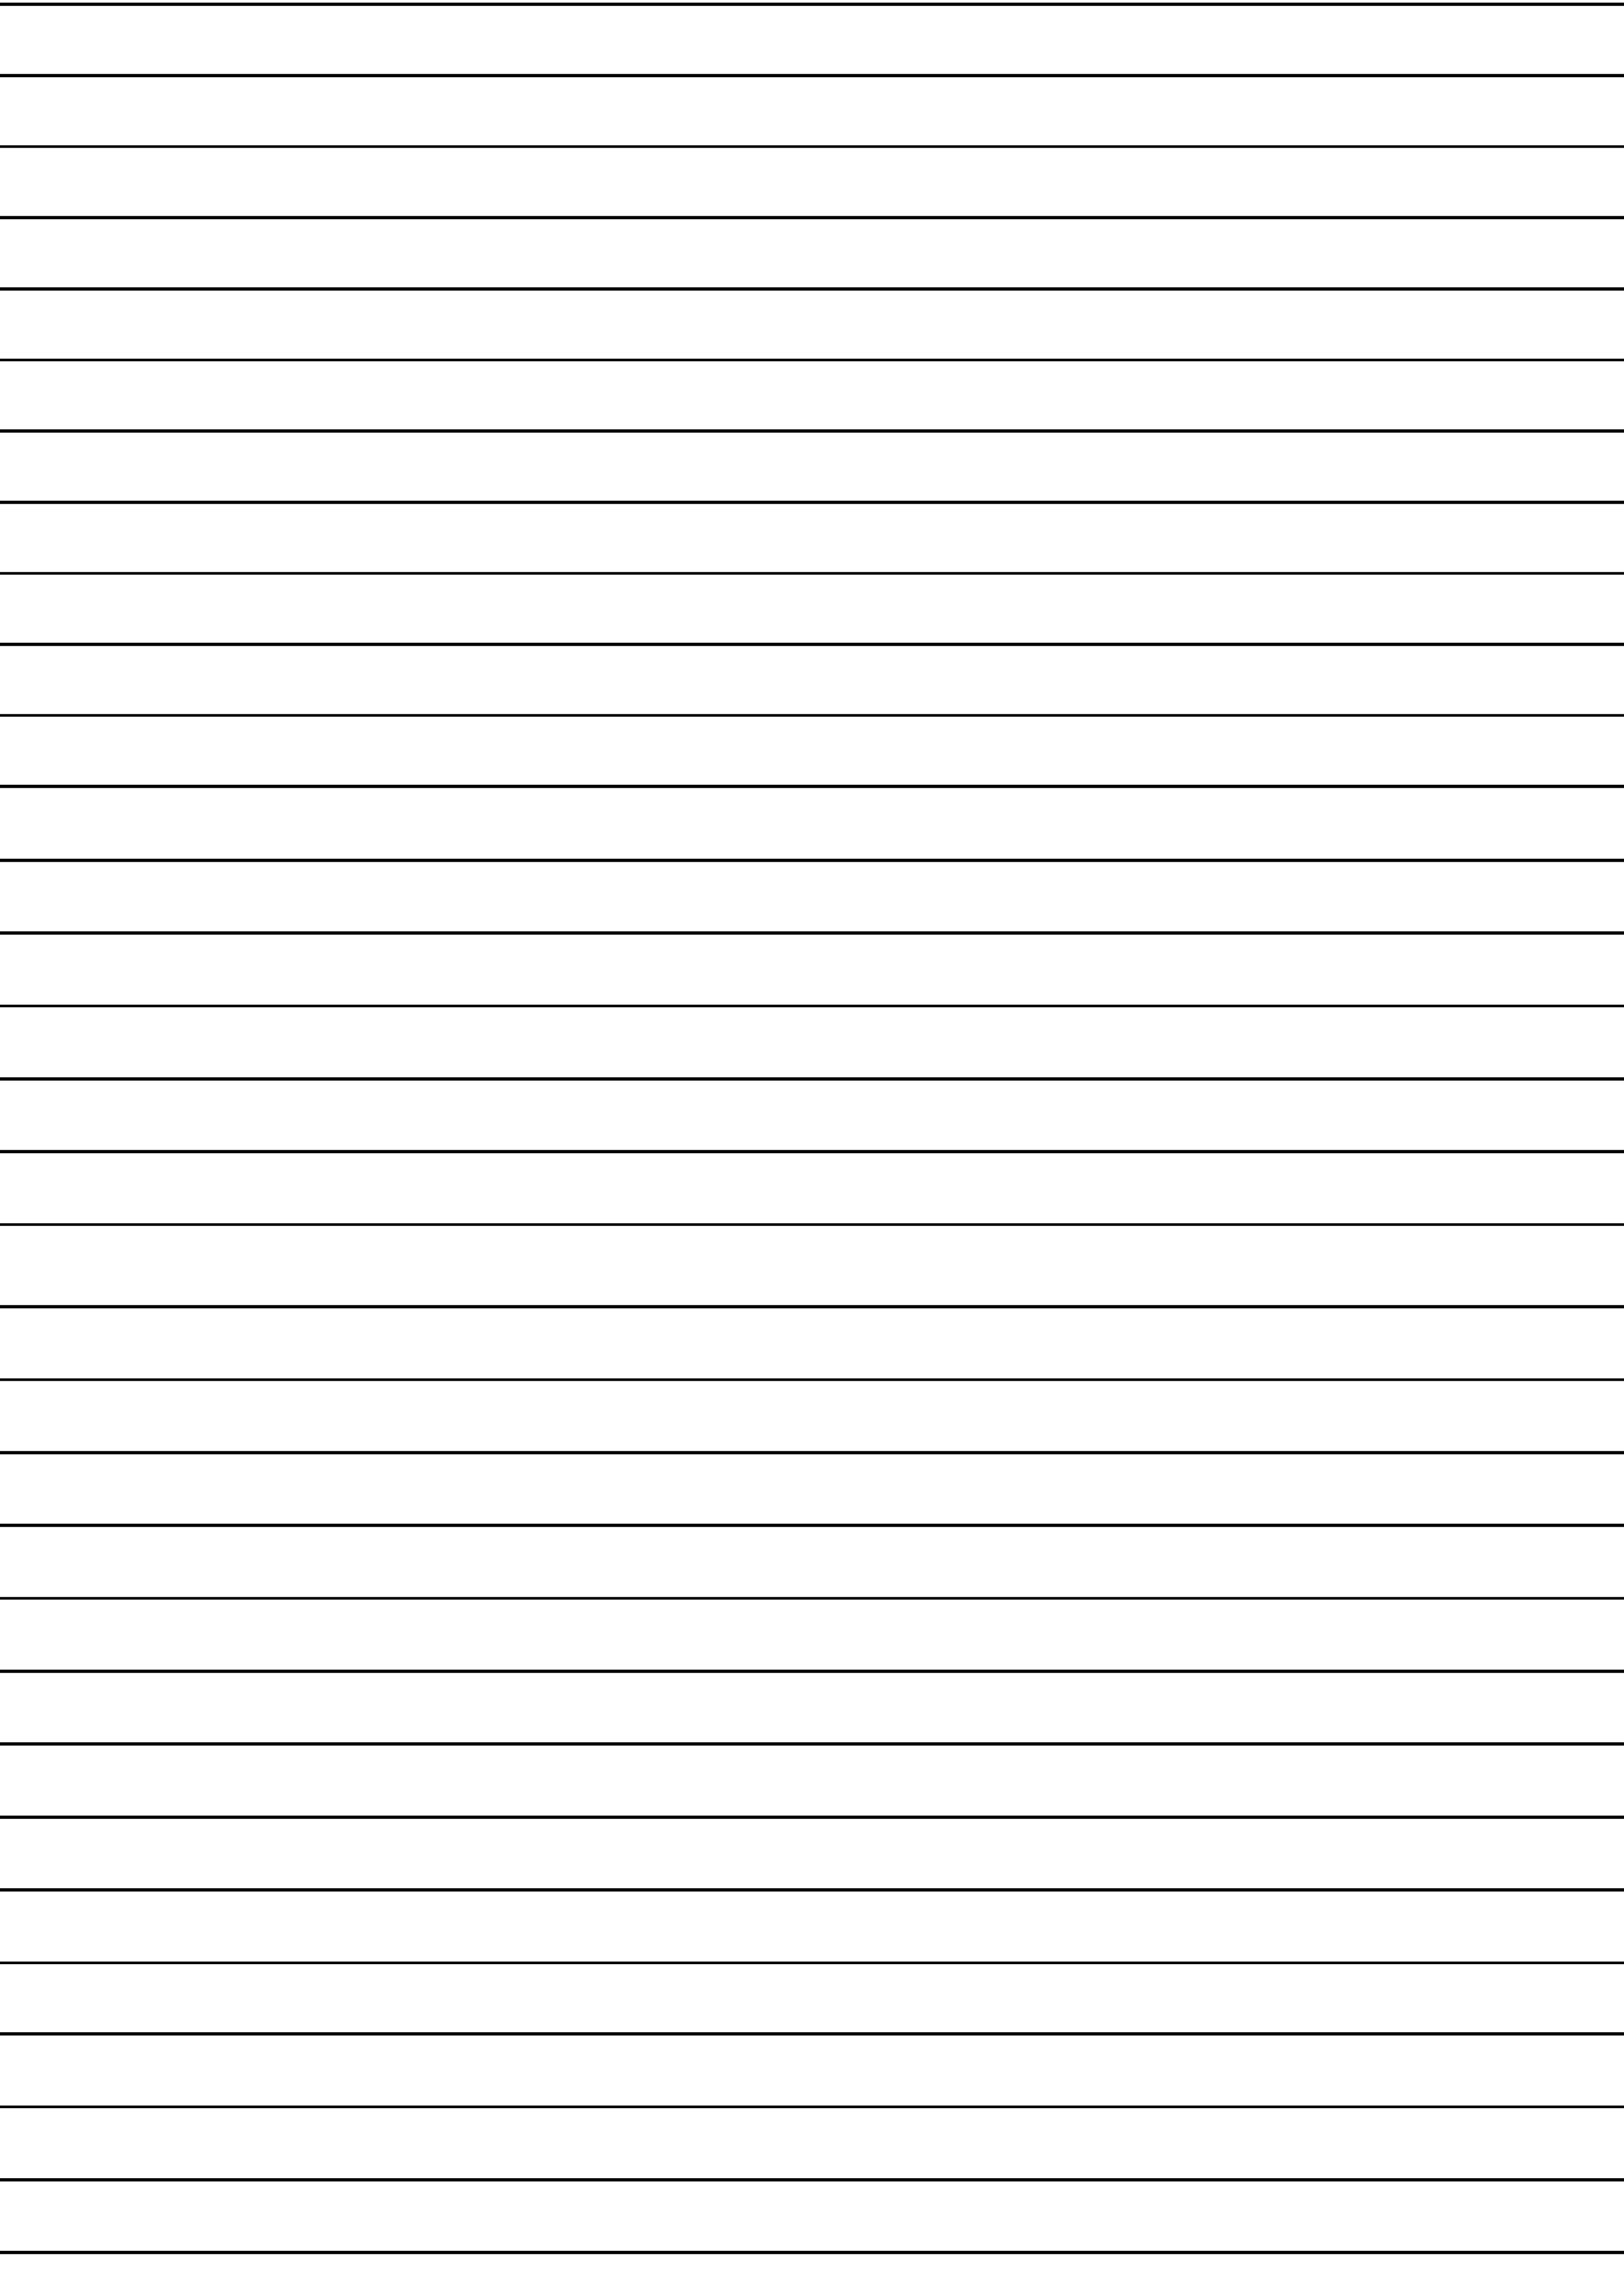 A5 Lined Paper